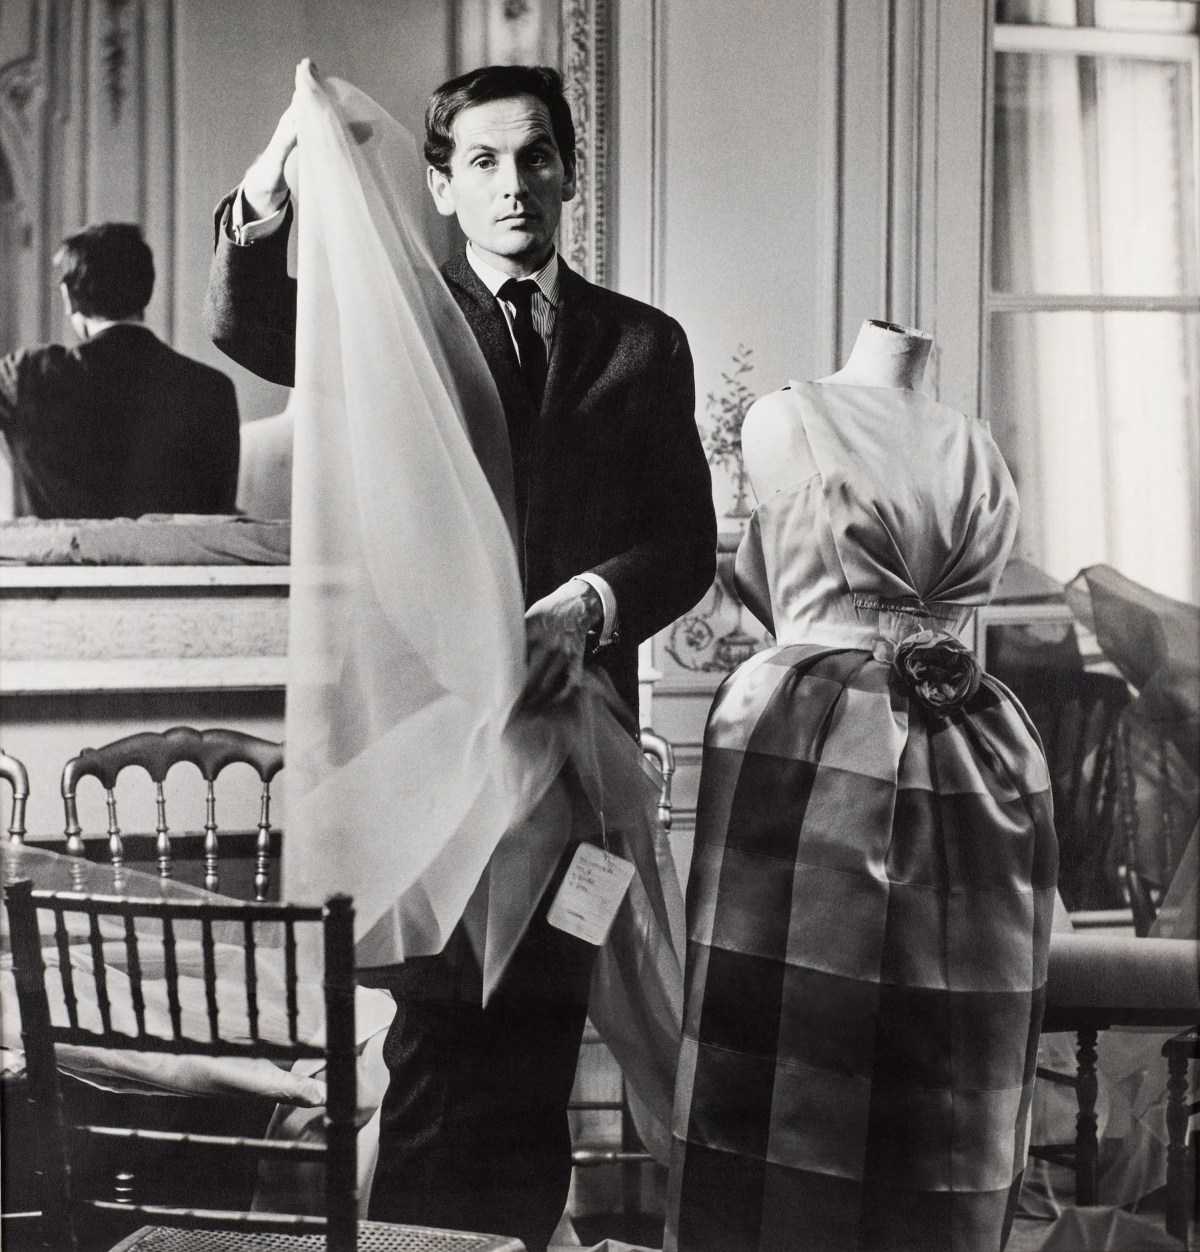 Legendary French fashion designer Pierre Cardin has died at age 98